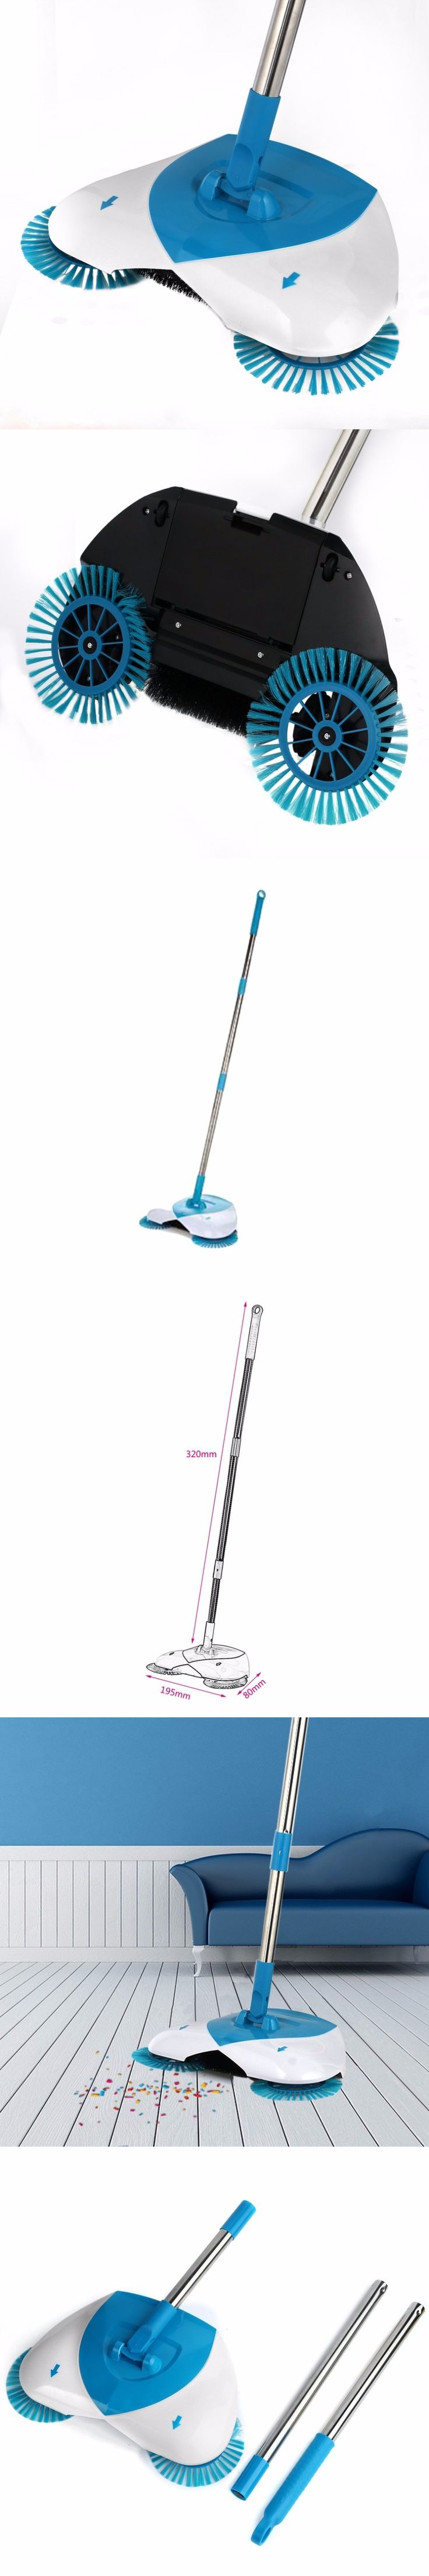 PREUP Spin Hand Push Broom Sweeper Household Dust Collector Floor Surface Cleaning Mop Adjustable Convenient Sweeping Supply Hot